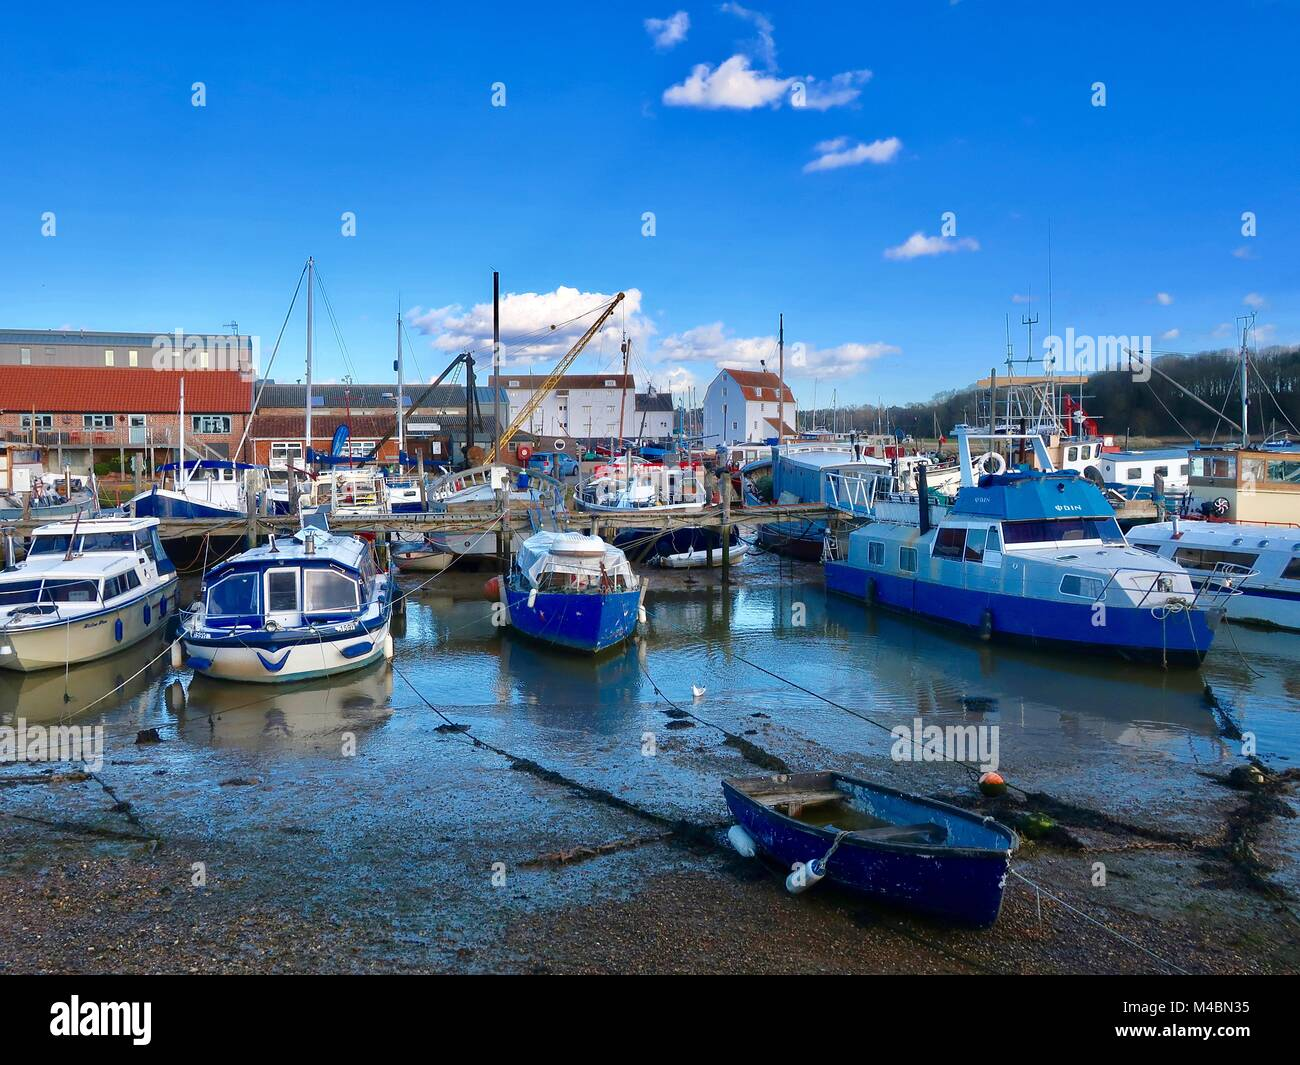 Boats moored in the mud at low tide. River Deben, Woodbridge, Suffolk. UK. Stock Photo